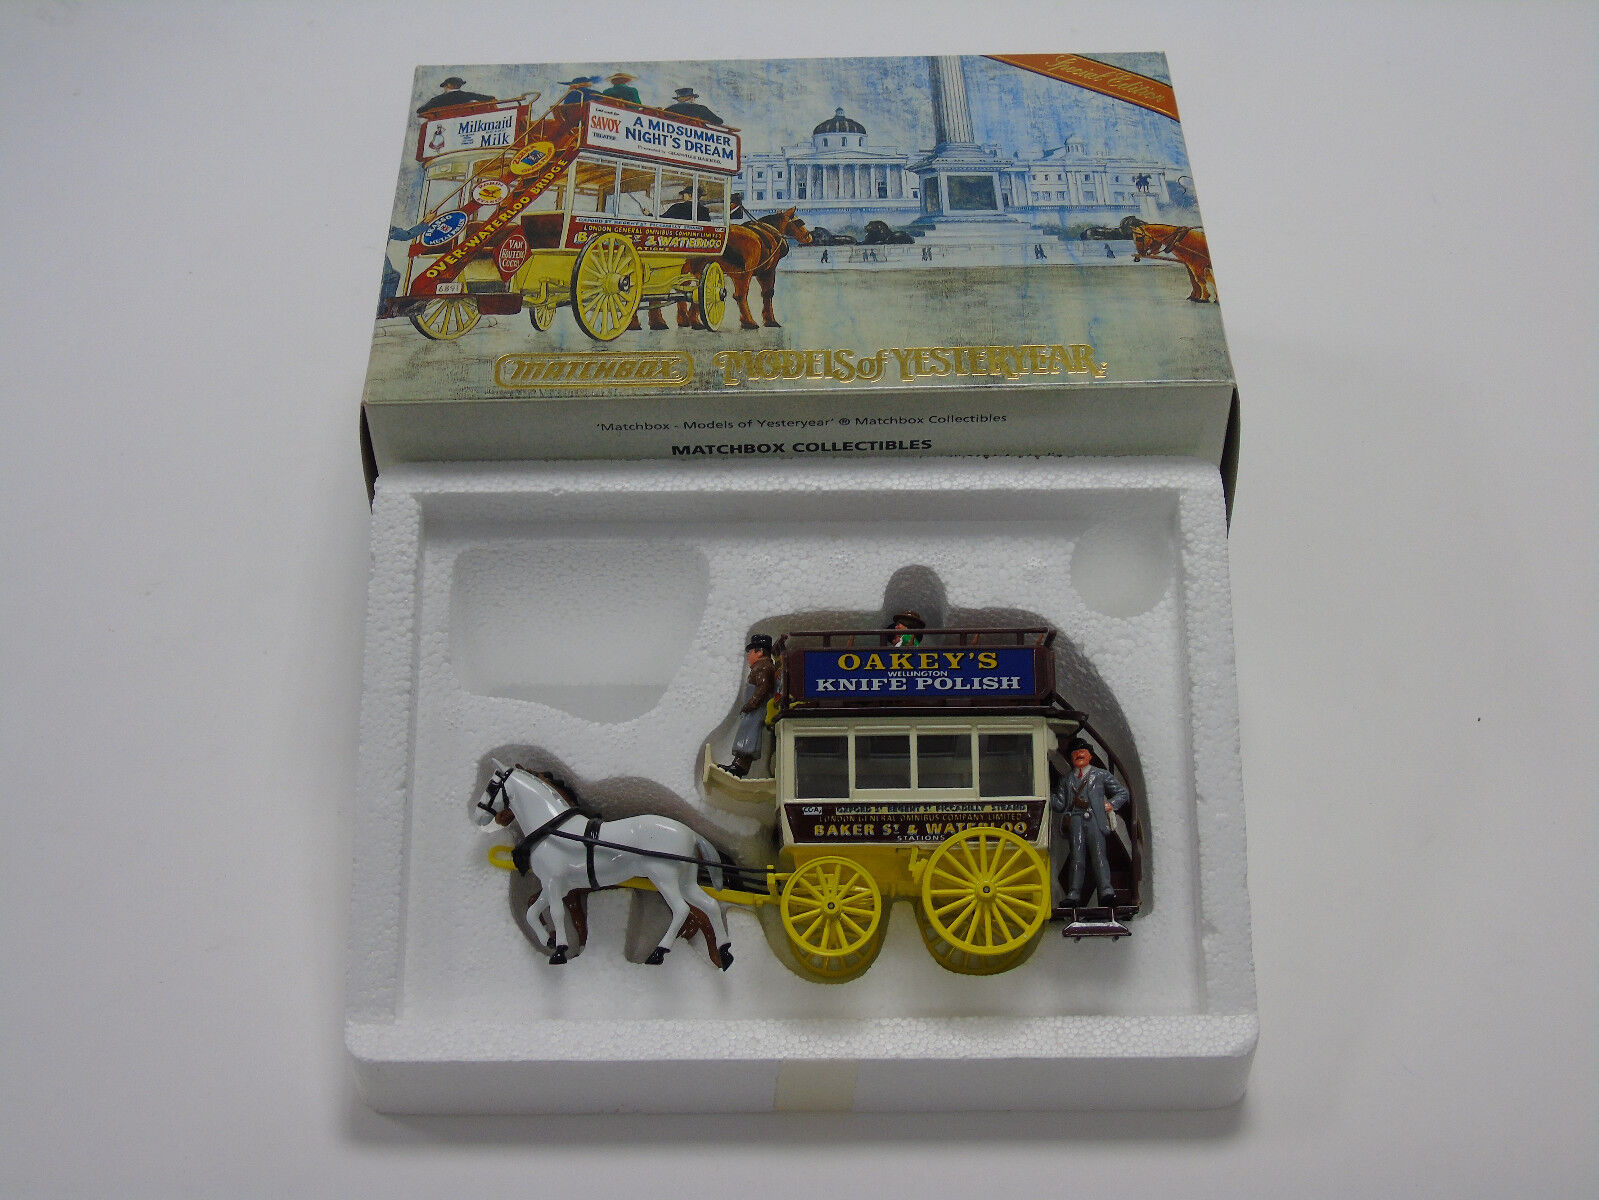 YSH2 Matchbox Models Of Yesteryear London Omnibus 1886 Horsedrawn Carriage Boxed